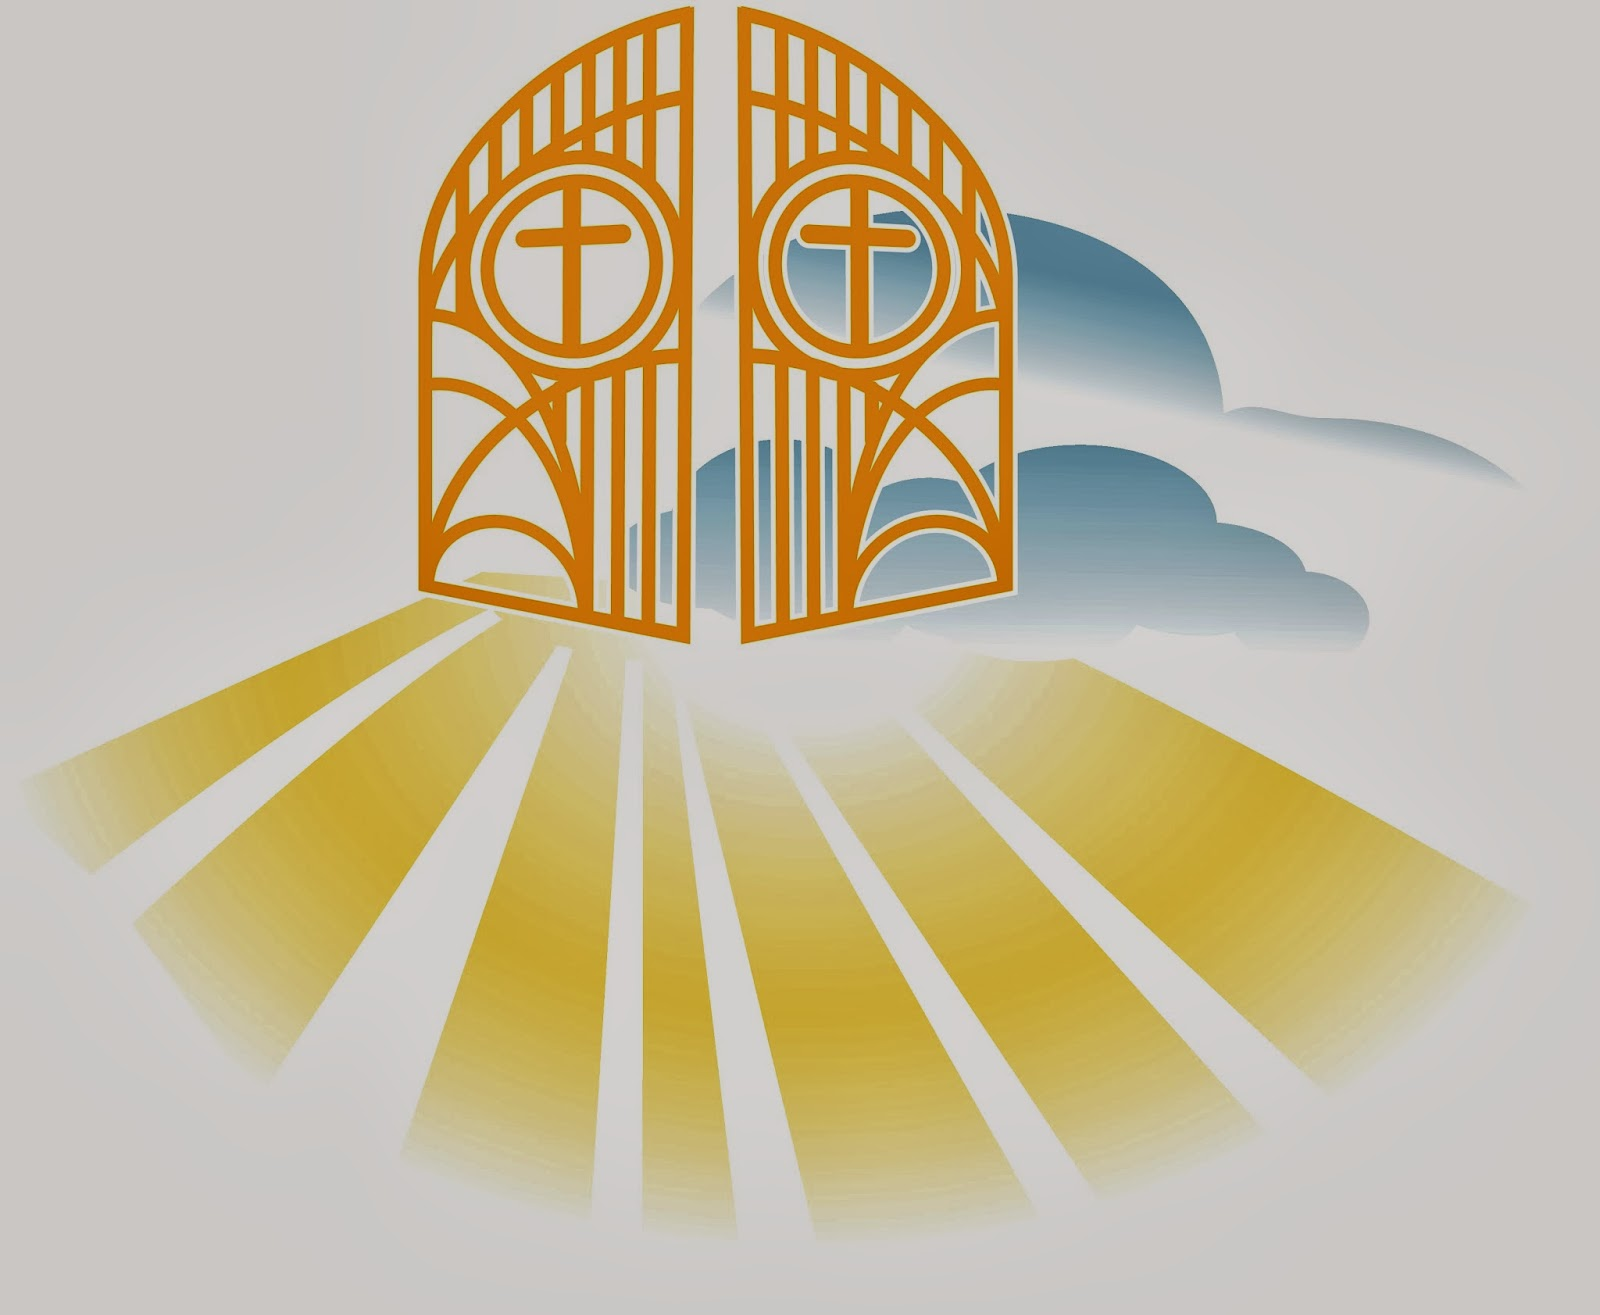 Pearly gates s clip. Heaven clipart closed